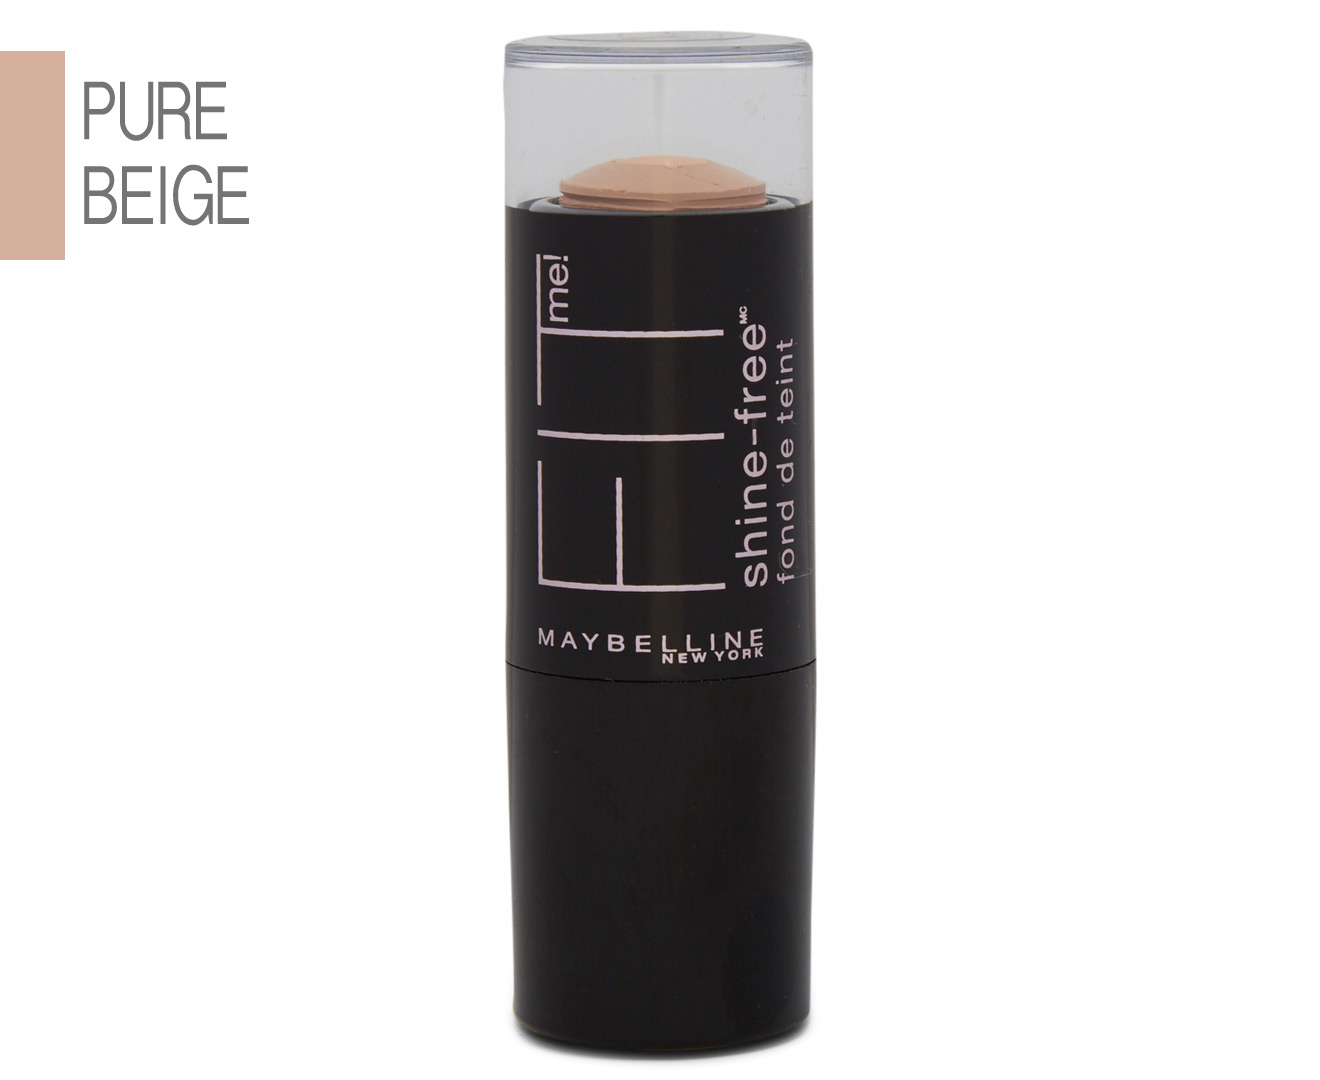 Maybelline Fit Me Shine Free Foundation Stick 9g 235 Pure Beige 30ml